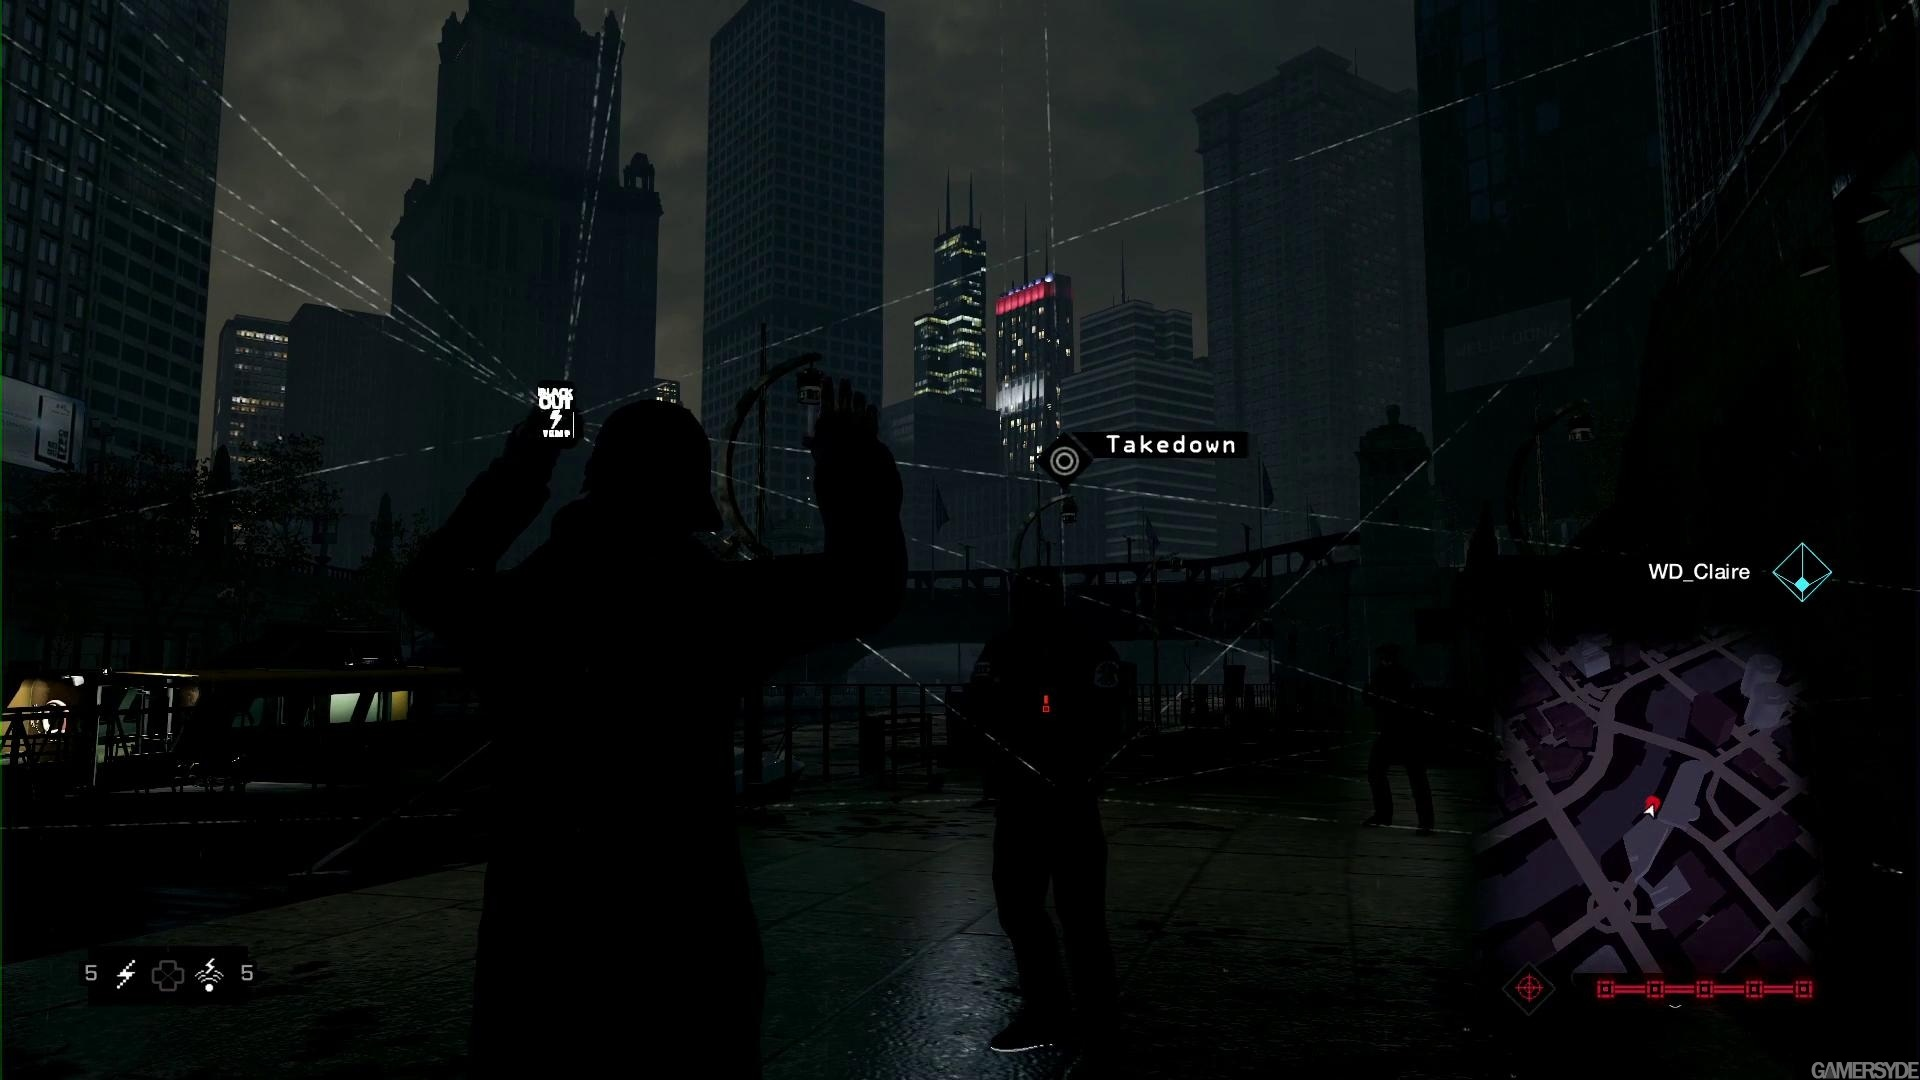 Galerie Watch_Dogs - Fichier: E3: Gameplay (1920x1080) - 2013-06-11 14:32:27